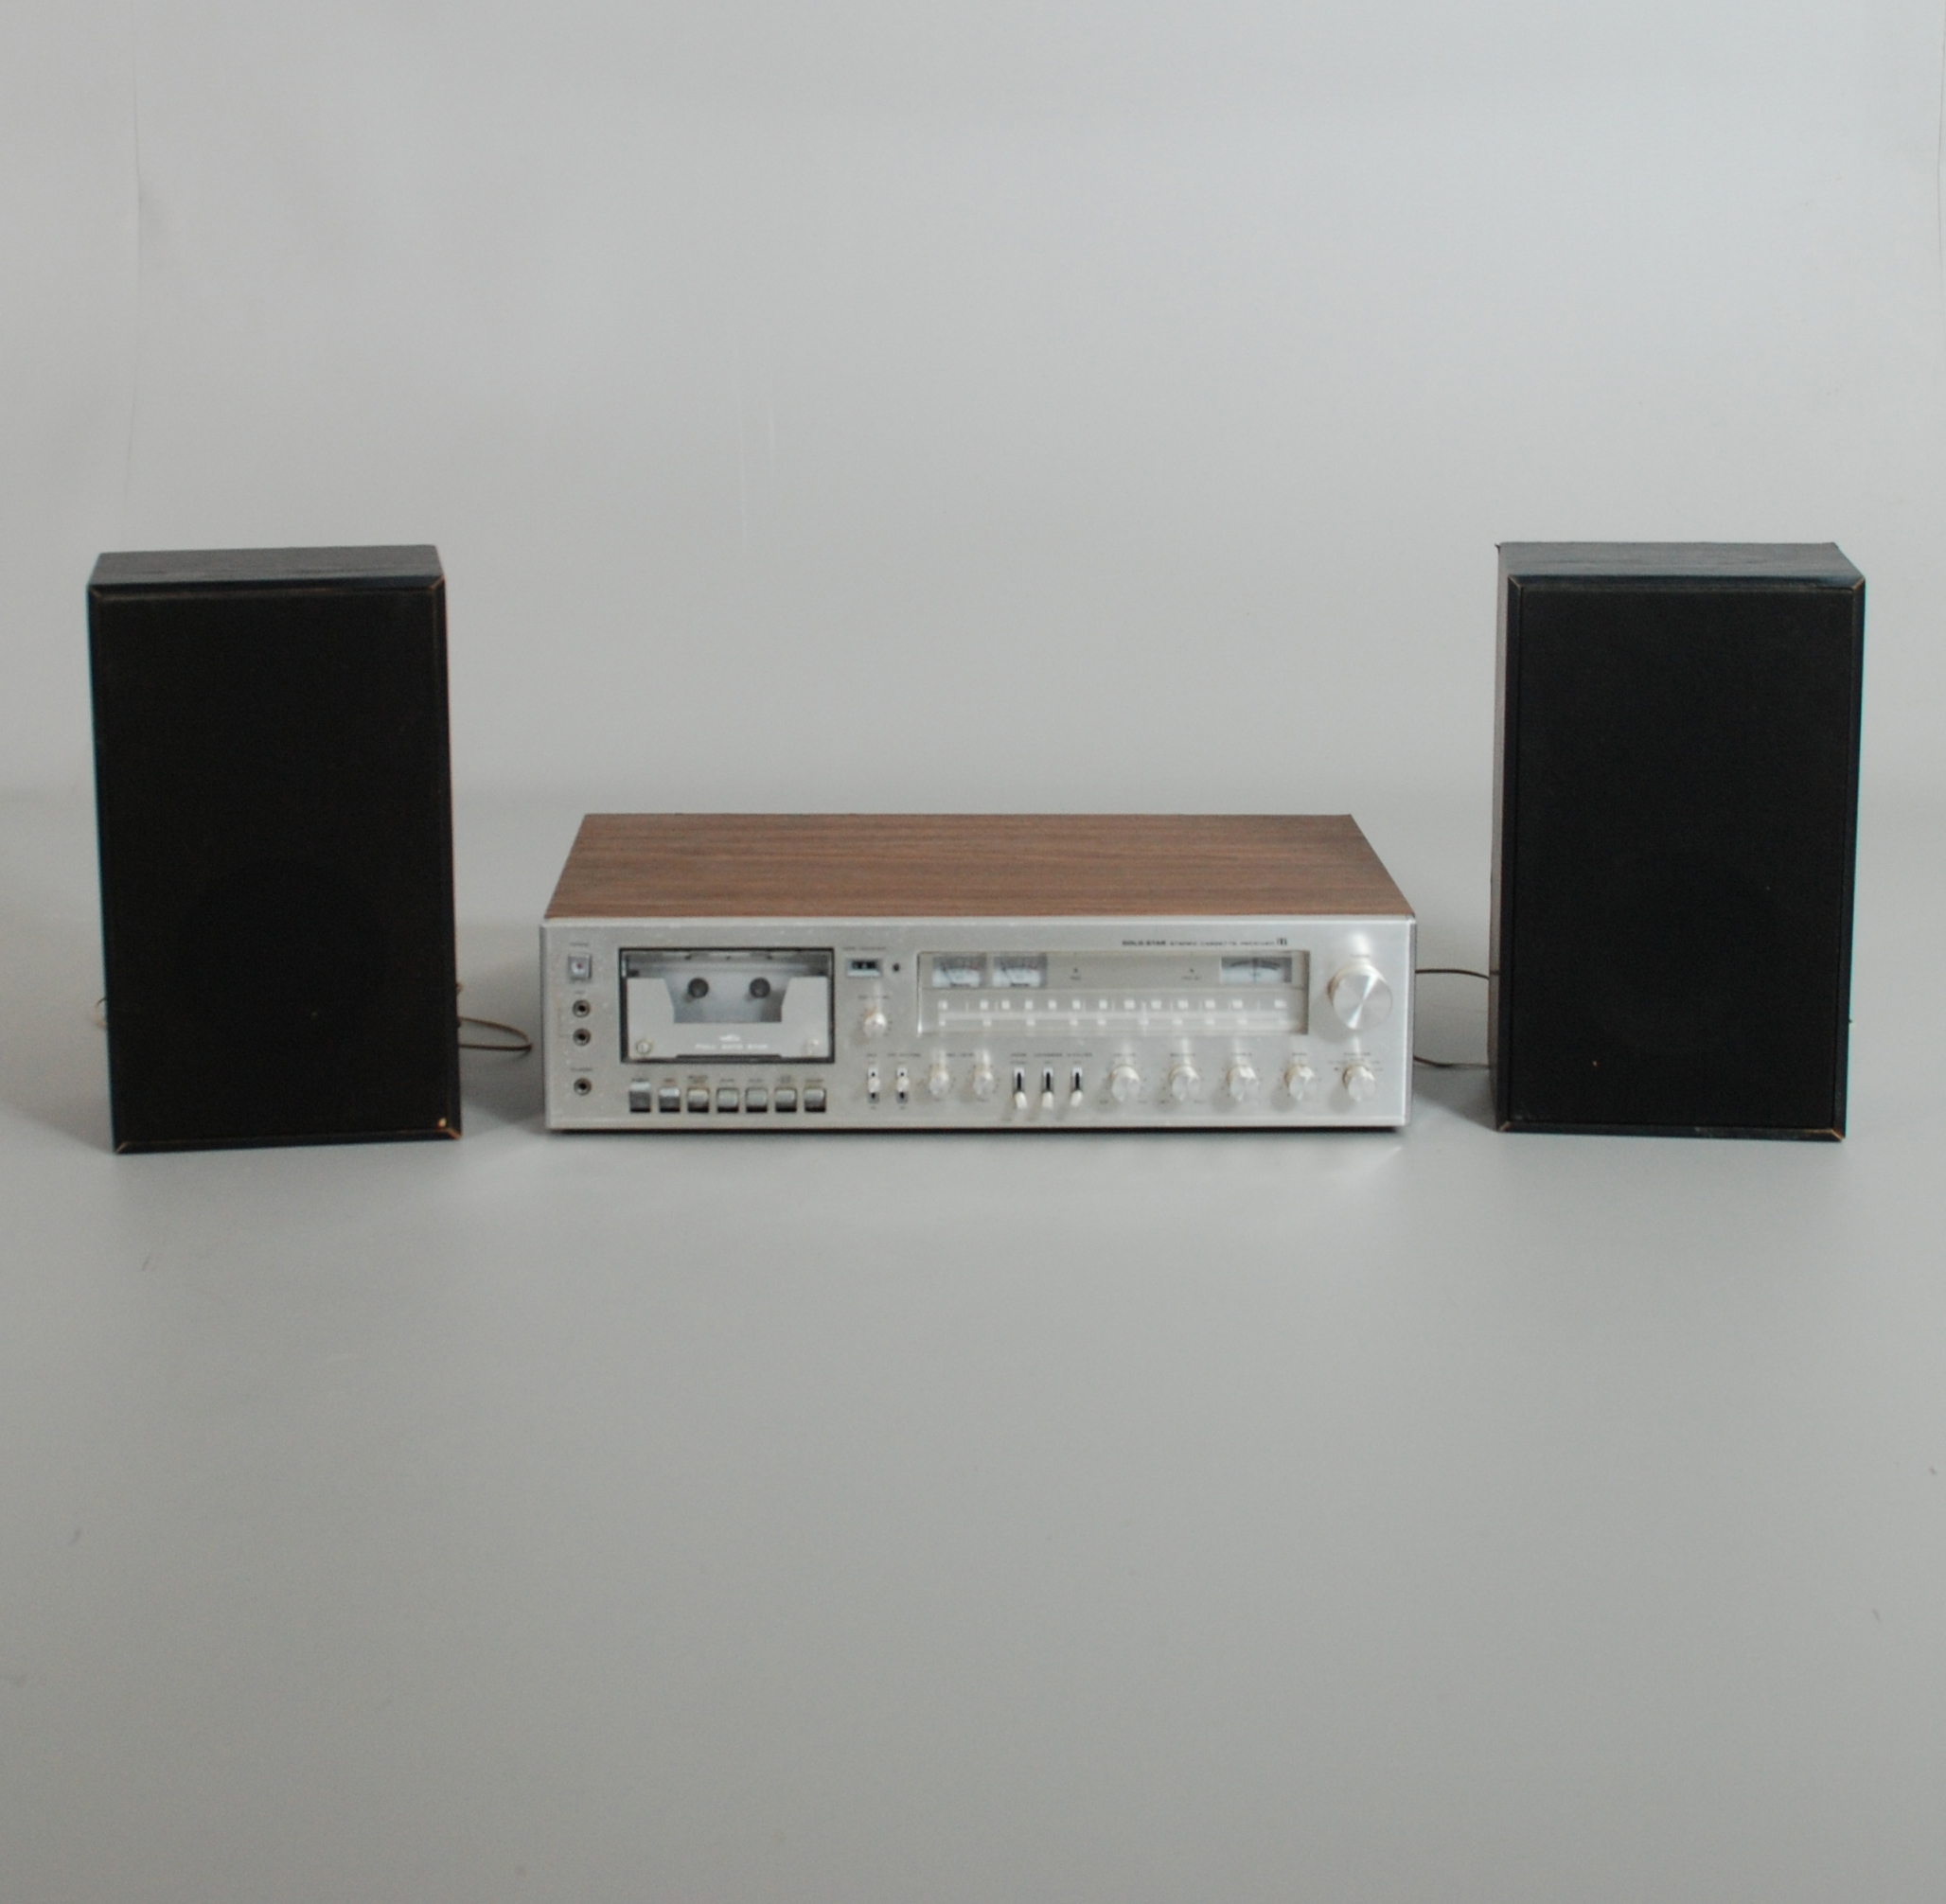 GOLDSTAR RECEIVER 785  Other - Modern consumer electronics - Auctionet